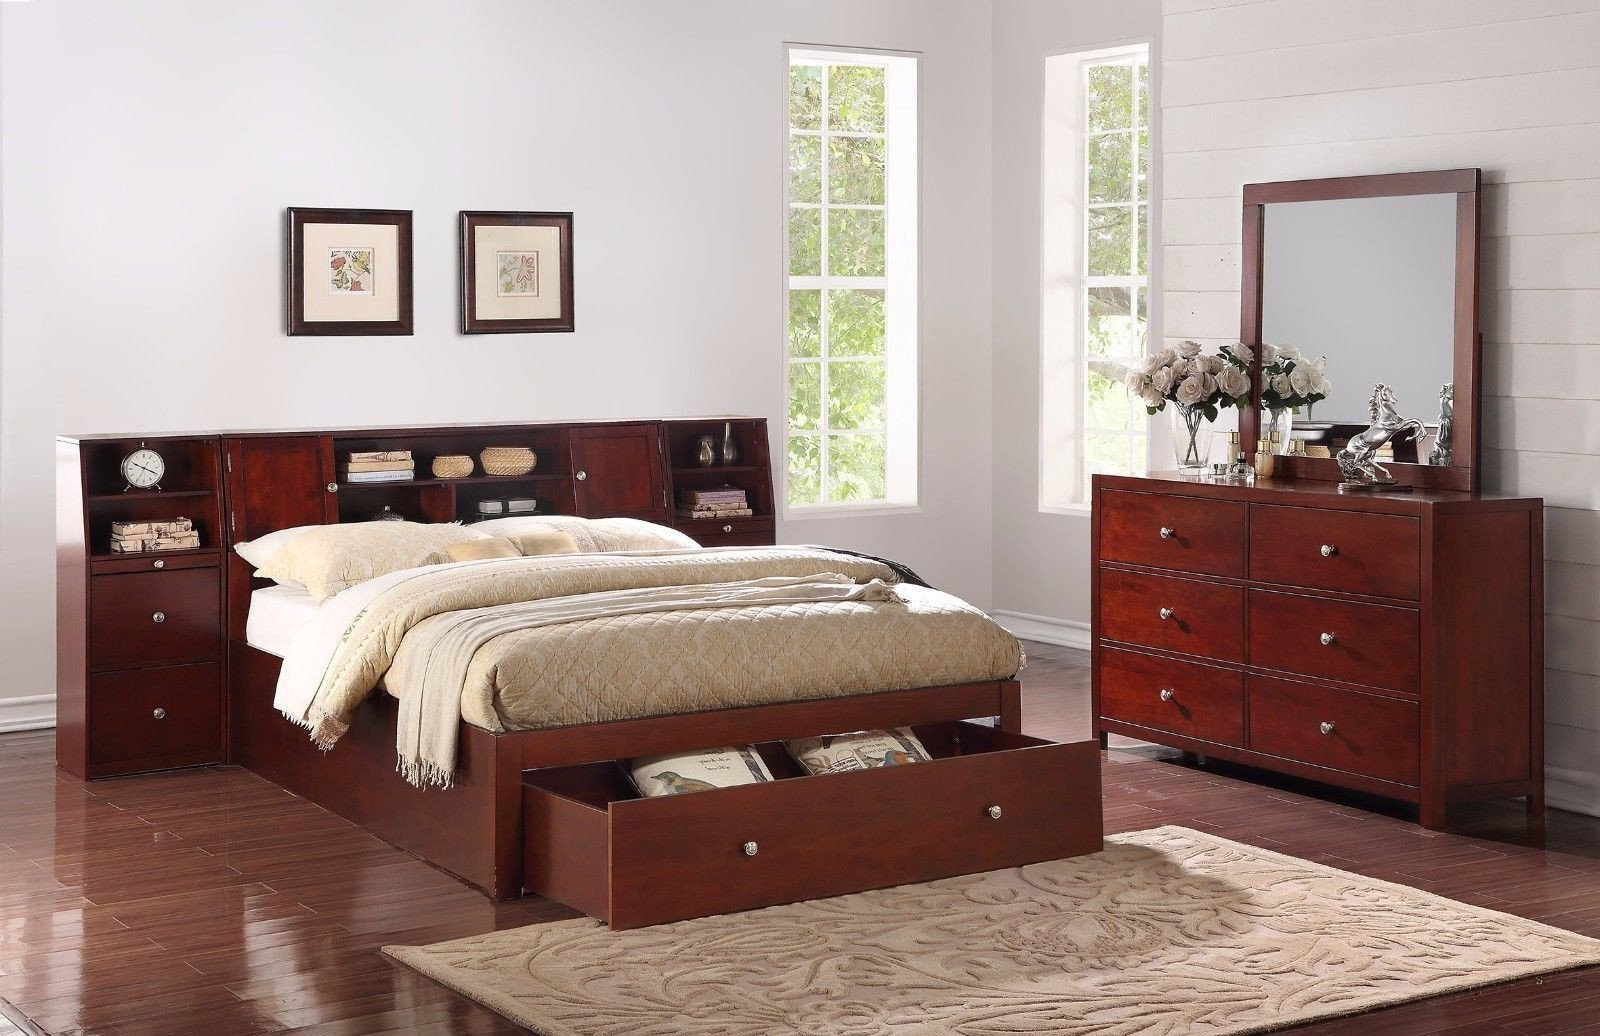 Mirror Bedroom Furniture Set Elegant Bedroom 4pc Set Queen Bed W Storage Drawer Shelf Nightstand